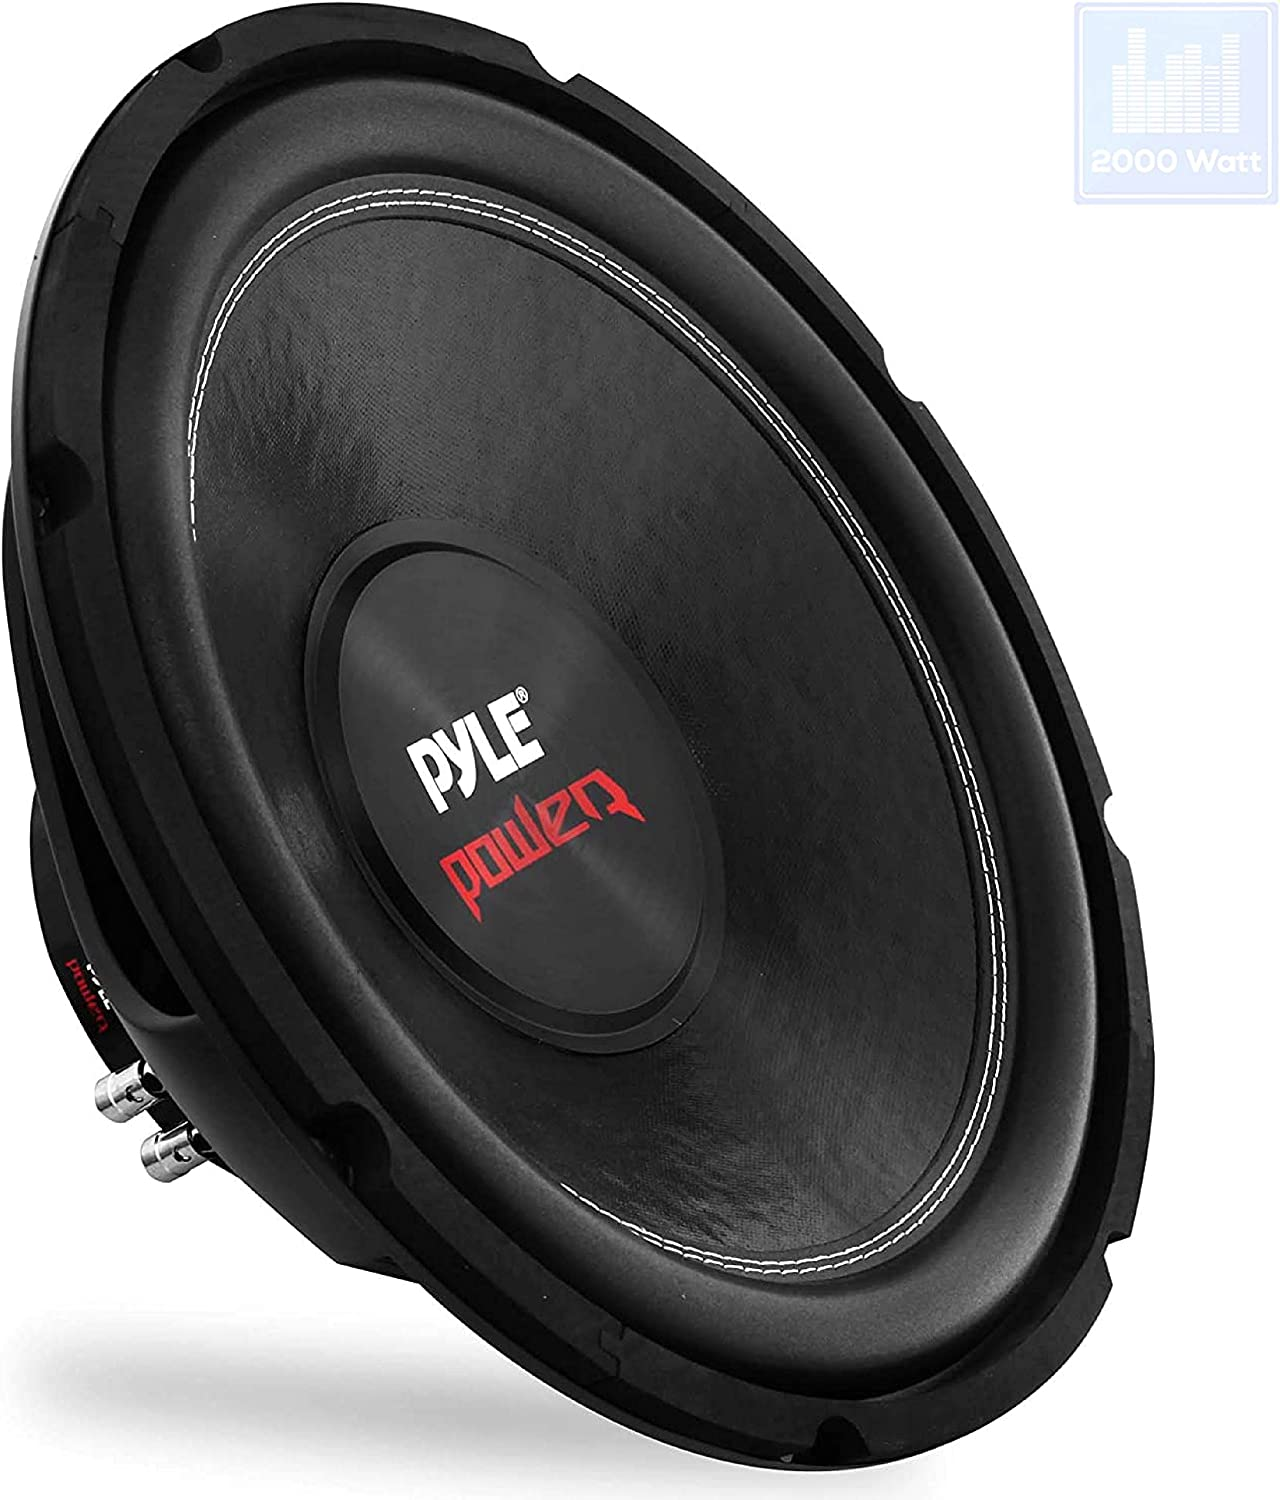 Car Vehicle Subwoofer Audio Speaker - 15inch Non-Pressed Paper Cone, Black Plastic Basket, Dual Voice Coil 4 Ohm Impedance, 2000 Watt Power, Foam Surround for Vehicle Stereo Sound System Pyle PLPW15D